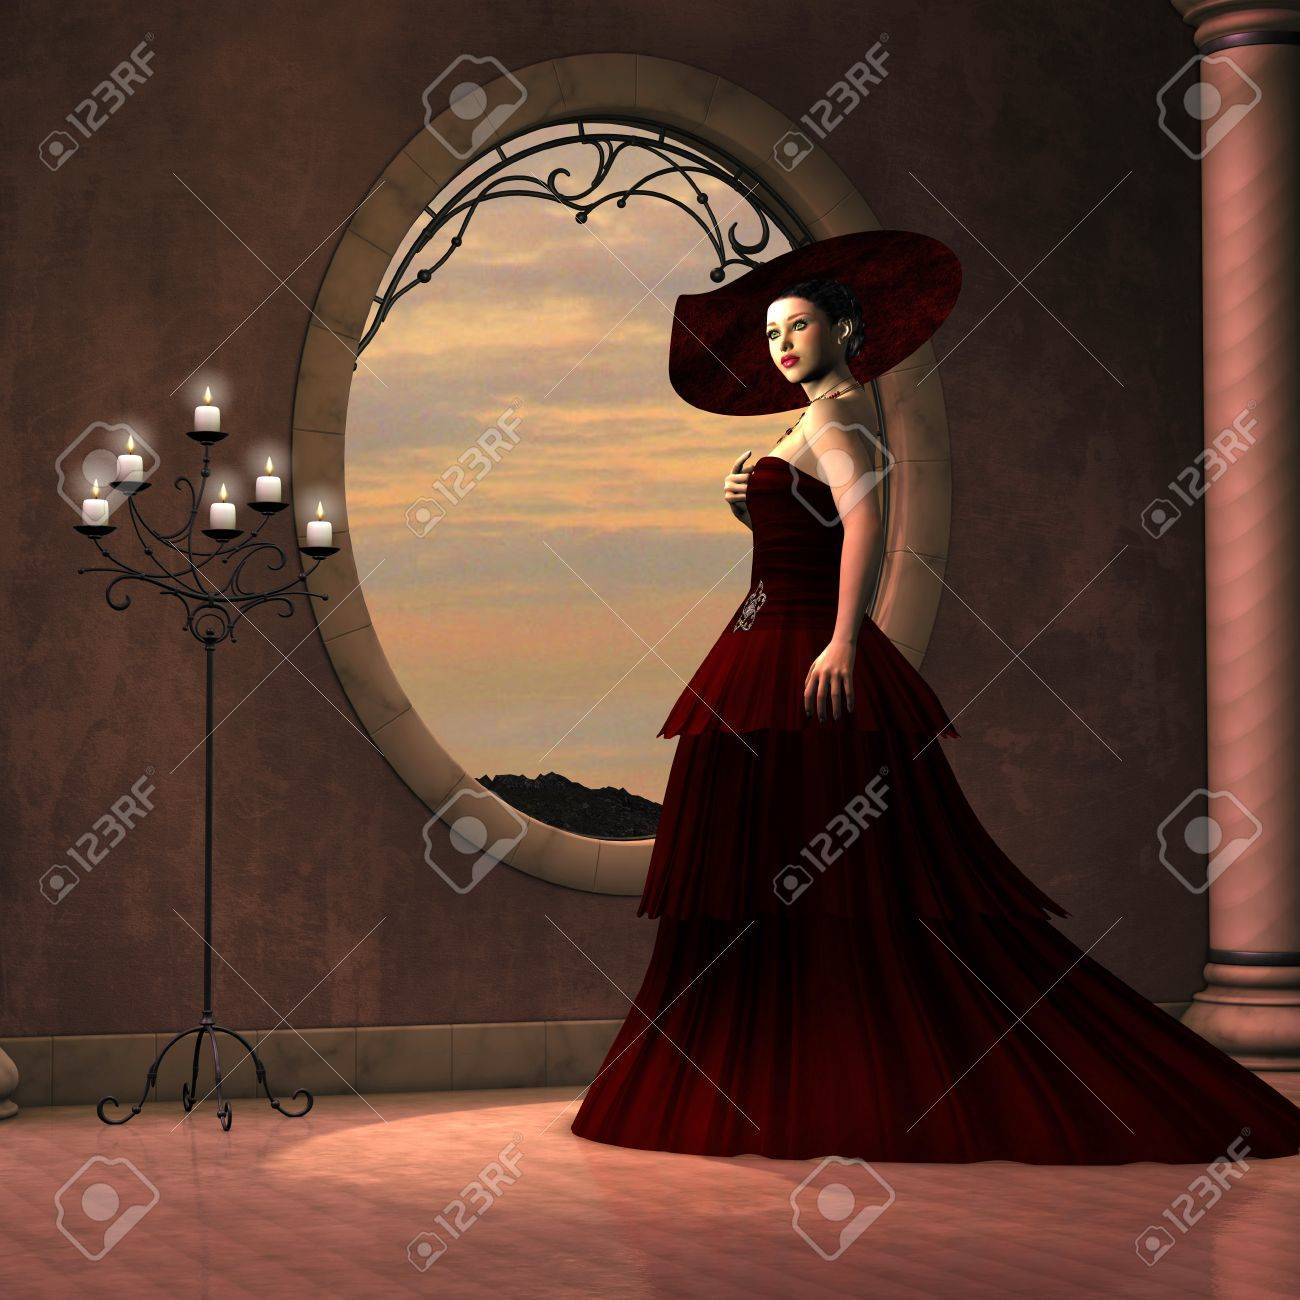 Lady in Red Dress - A beautiful woman in a red gown poses near a window 410372cef